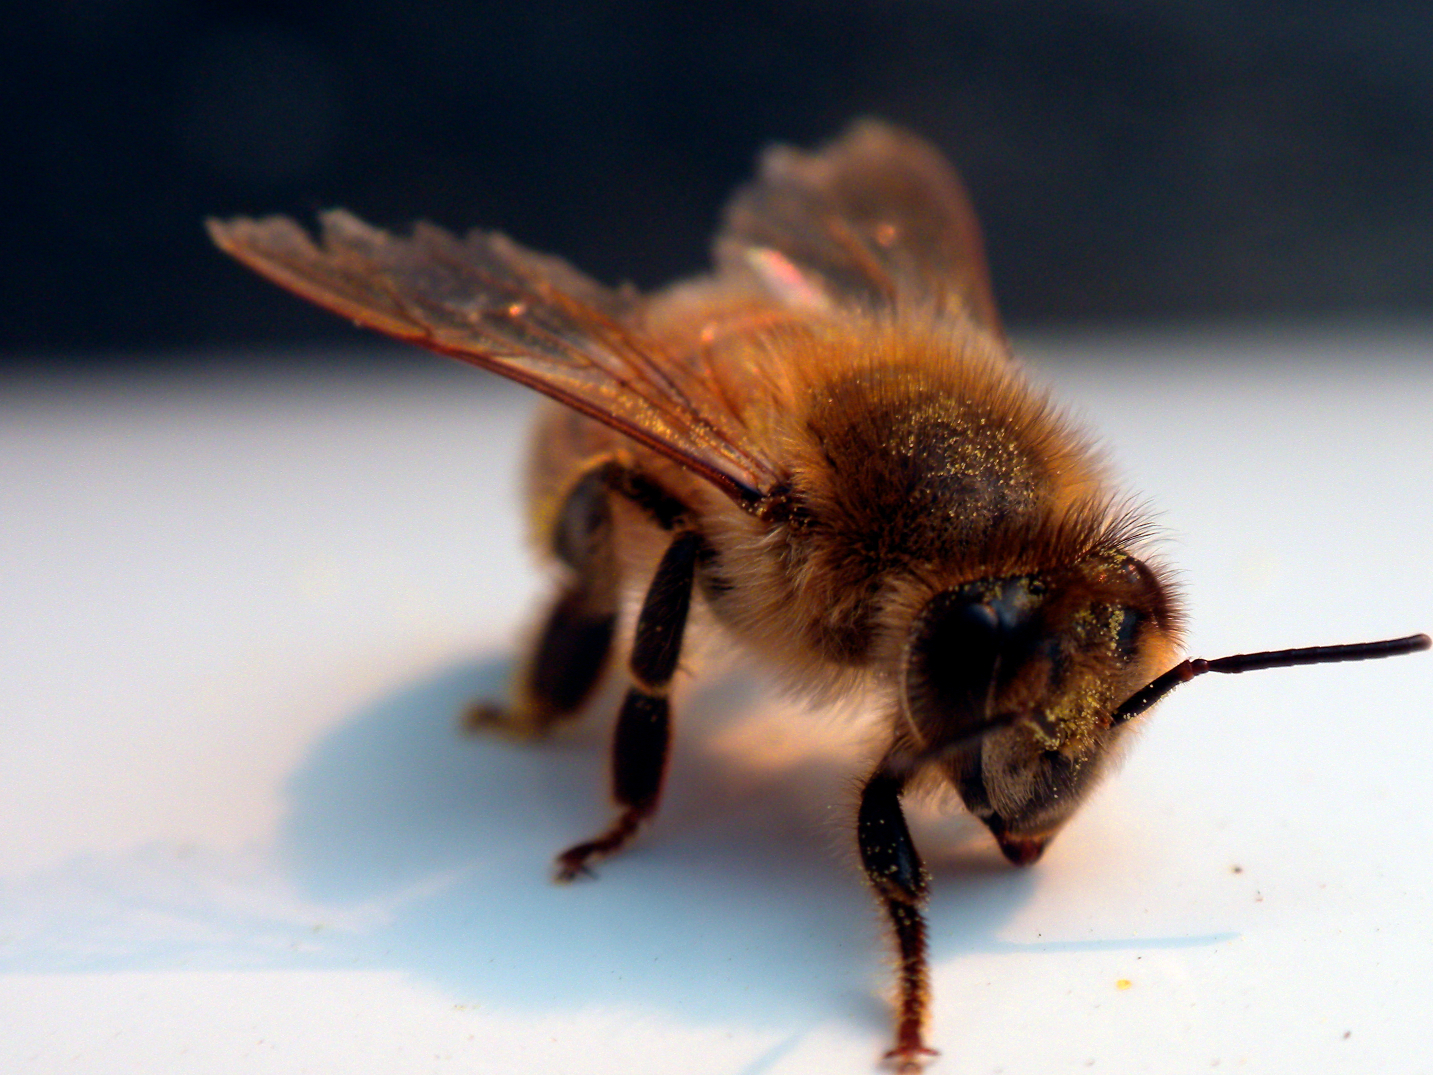 After protests by beekeepers, Bulgaria to back EU ban on some pesticides